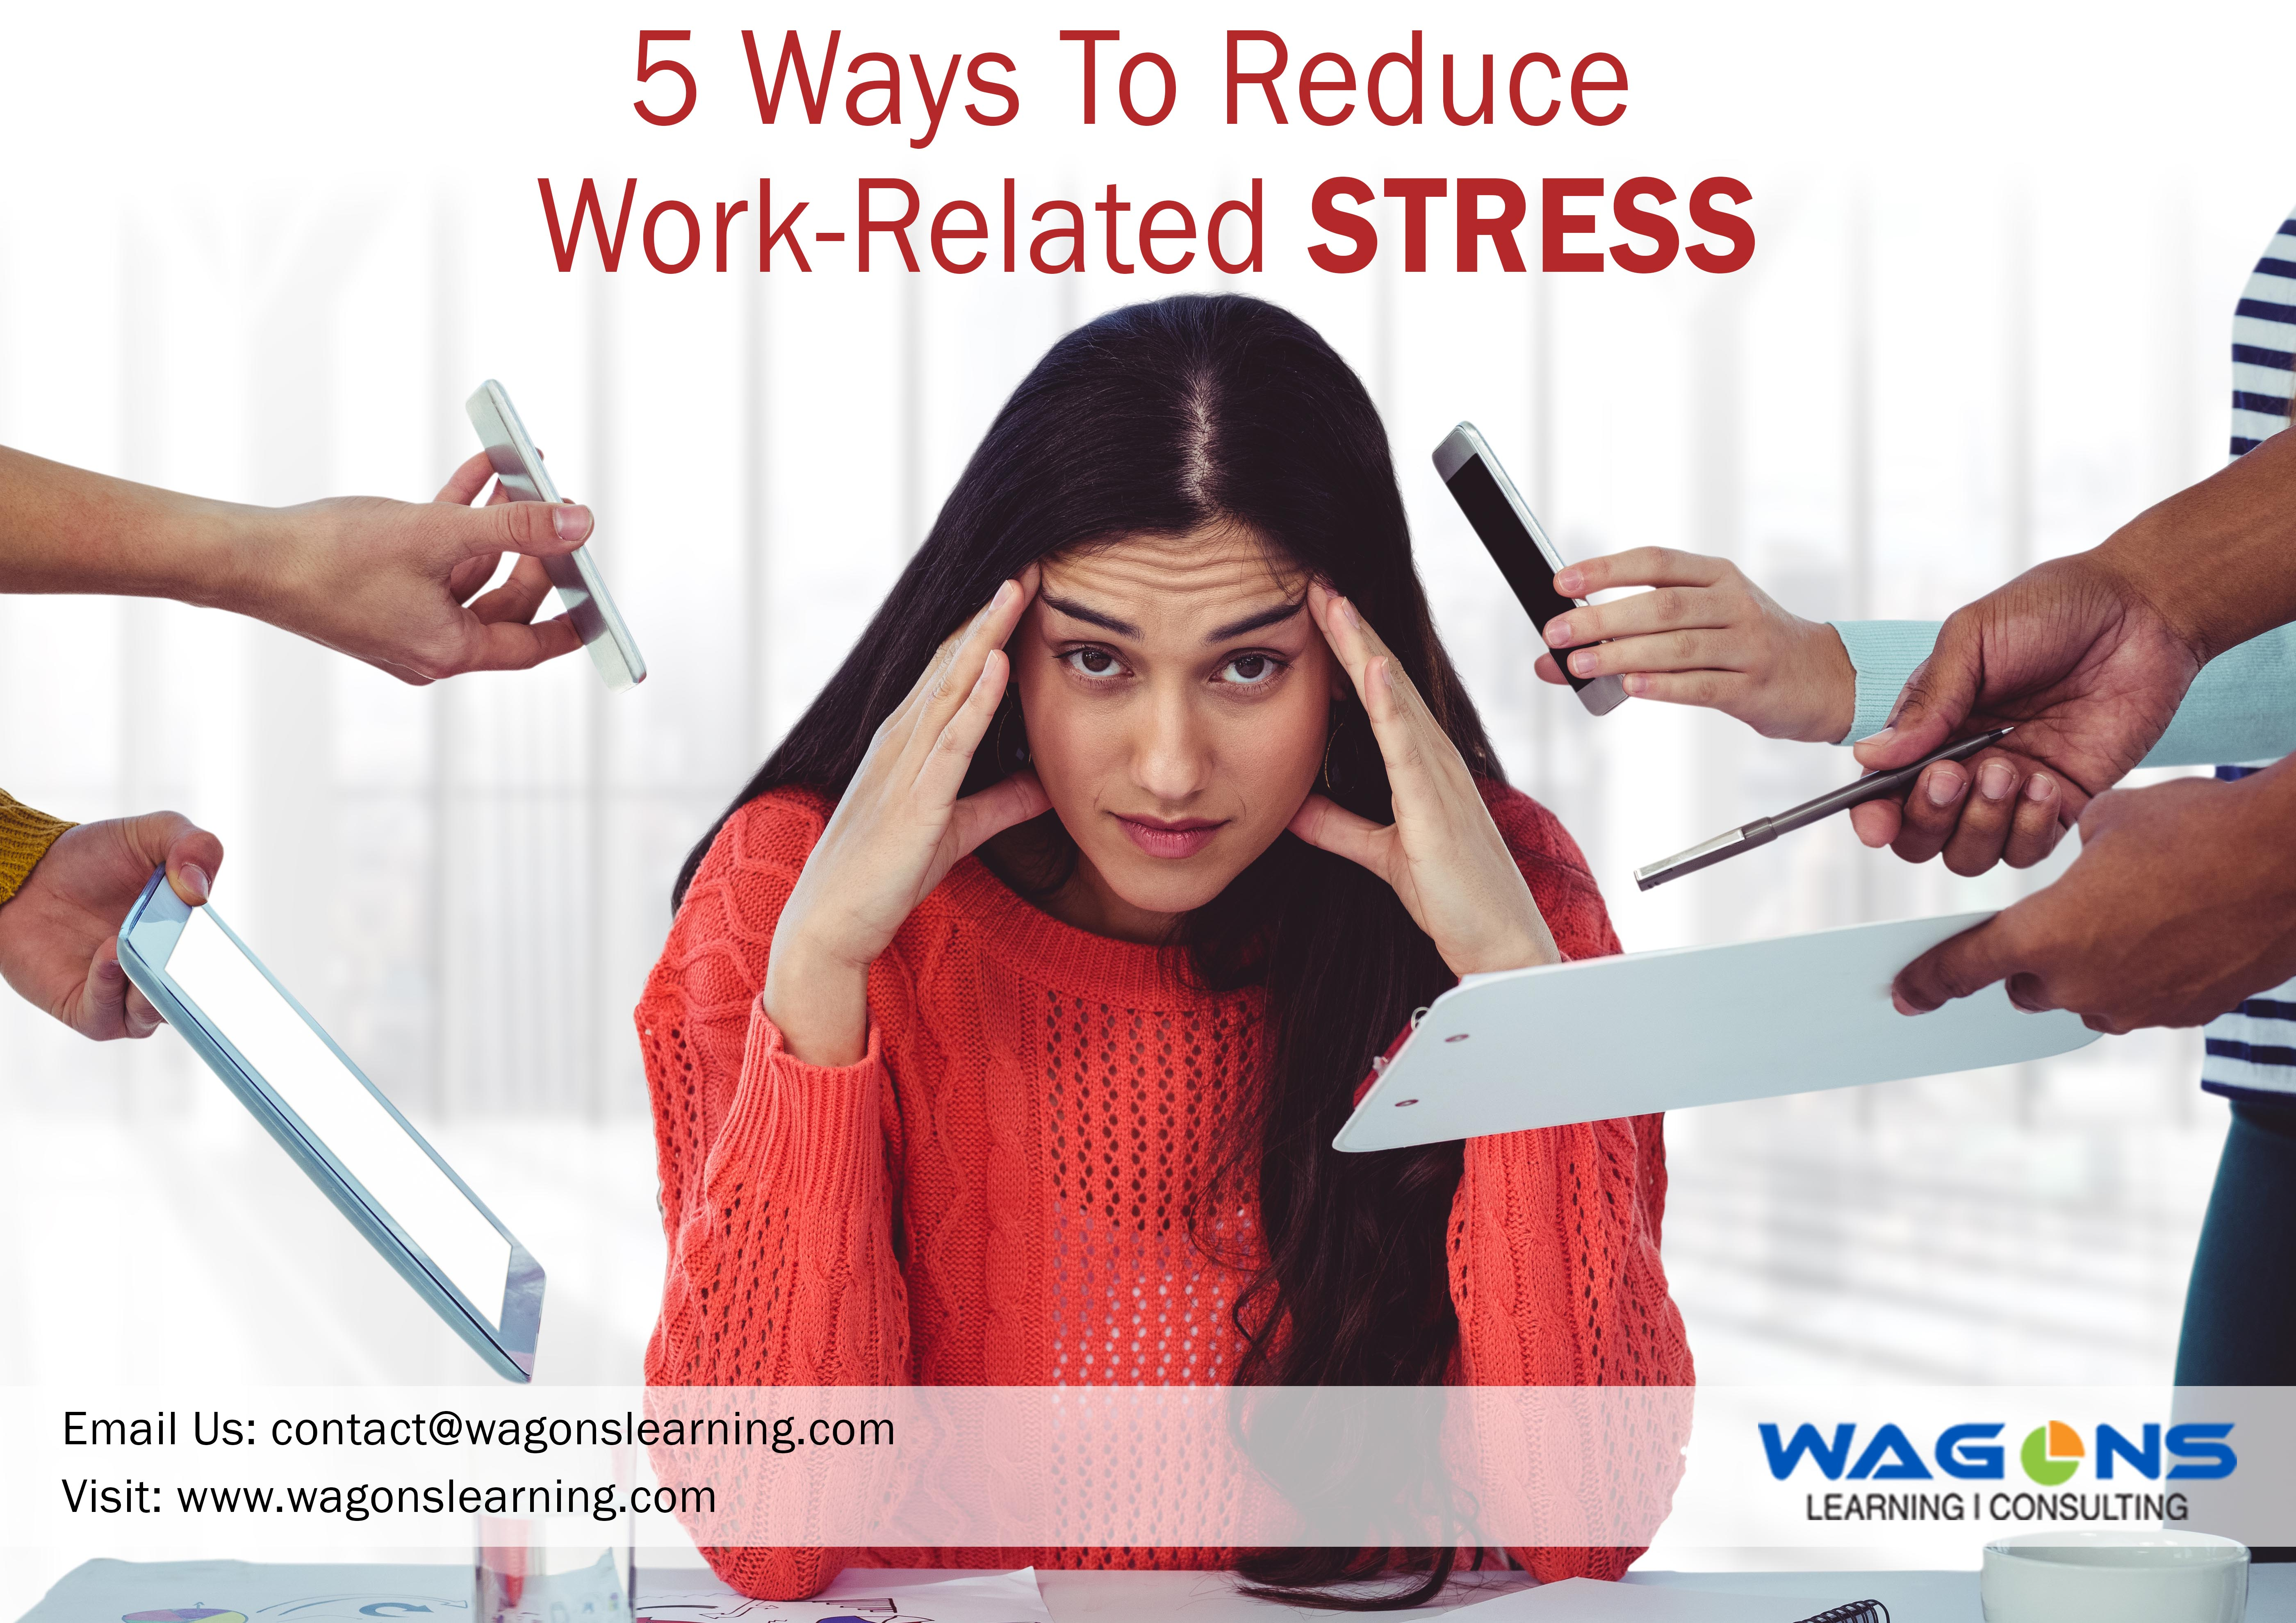 Five Way to Reduce Work-Related Stress